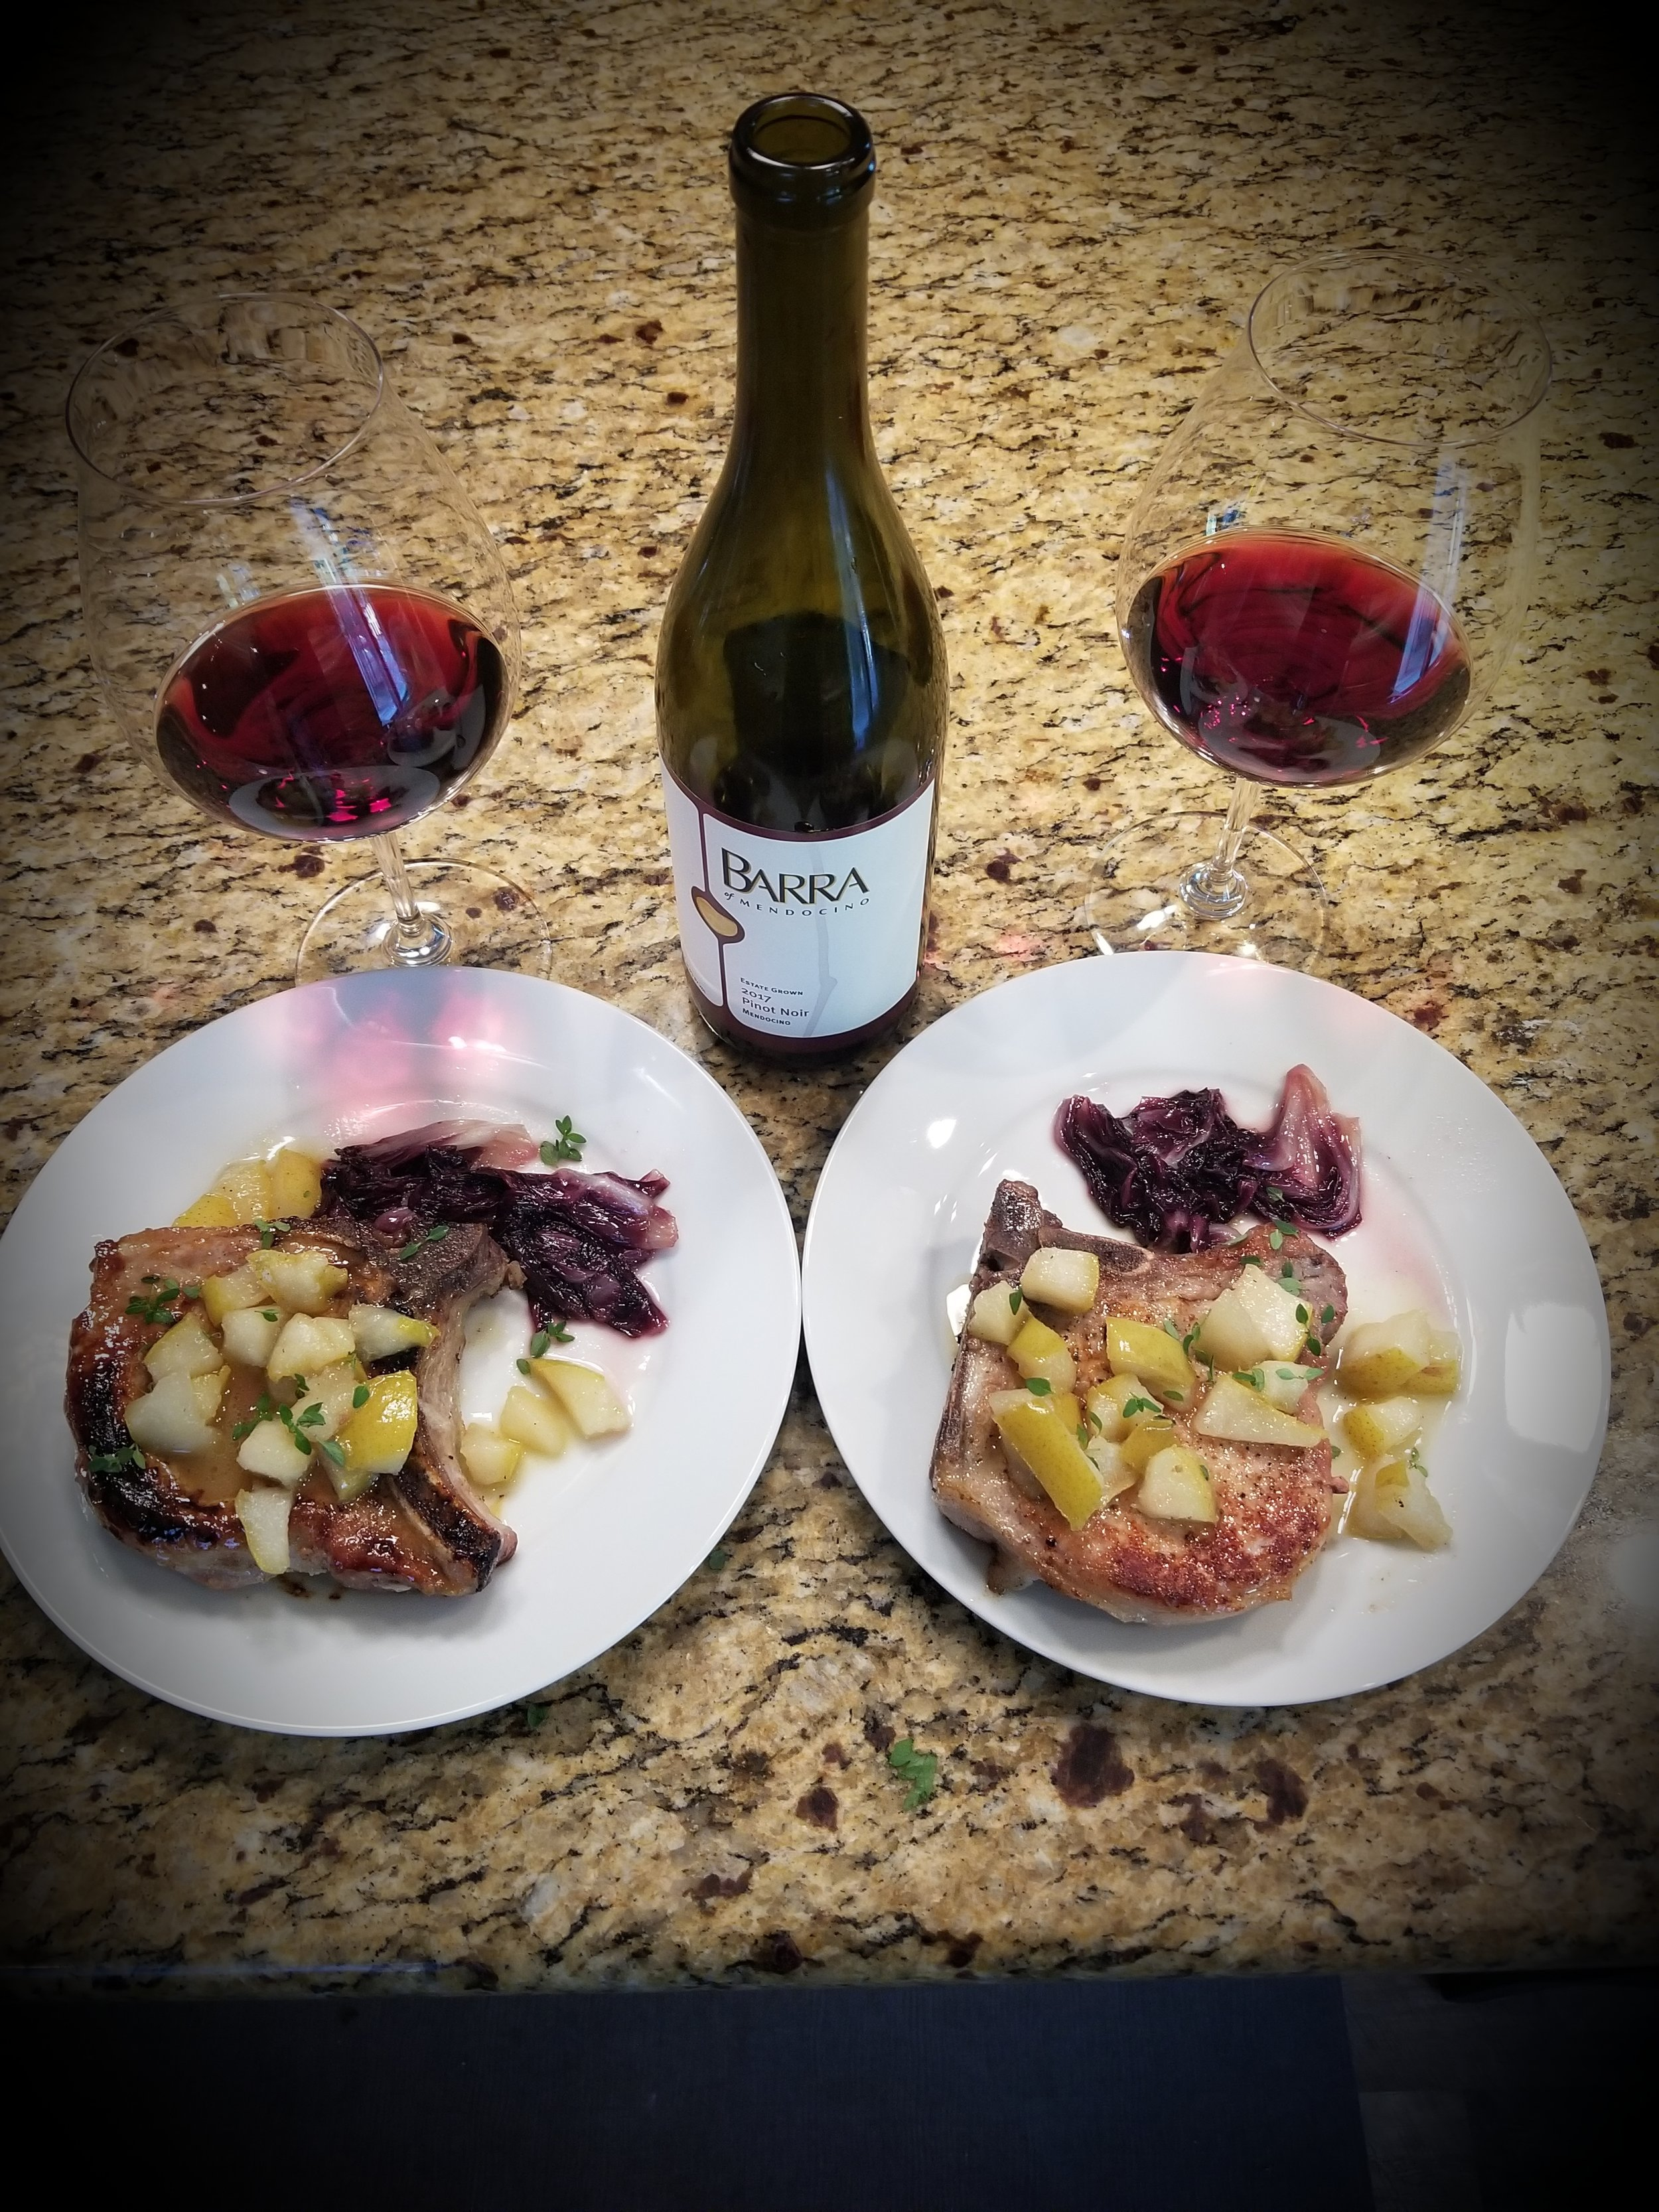 Bone in Pork Chops topped with pears, paired with Barra Pinot Noir